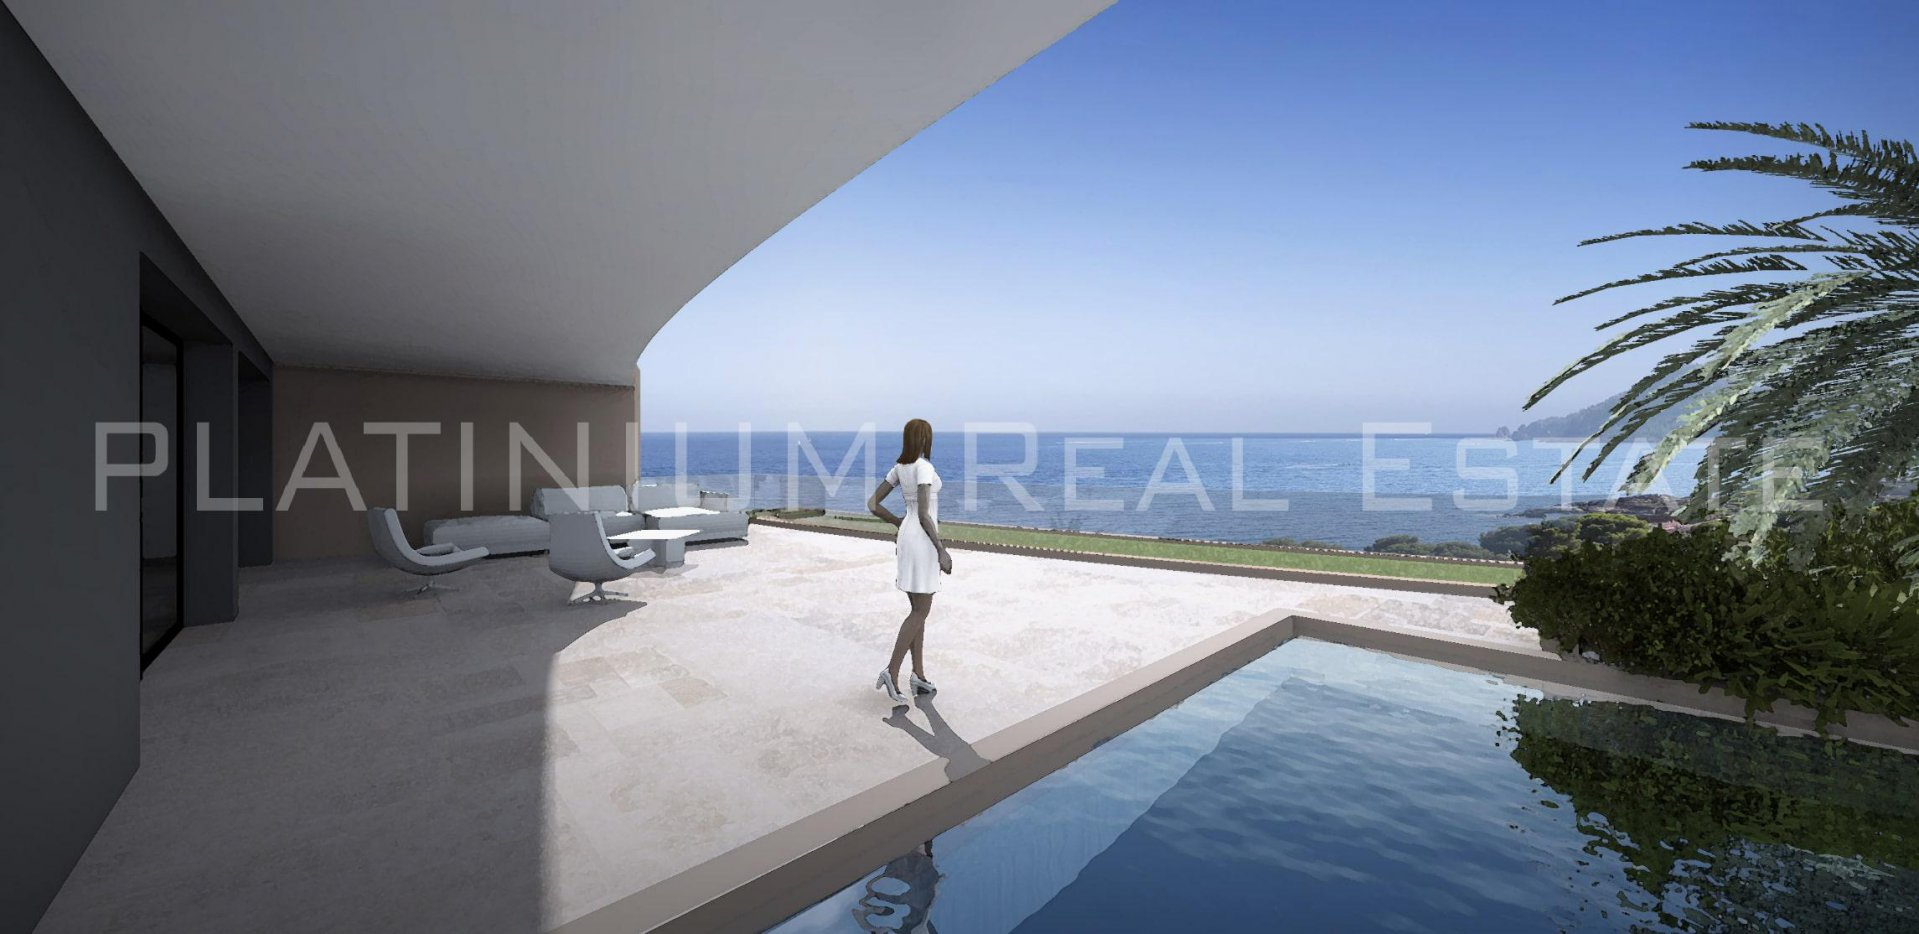 SAINT RAPHAEL Appartement Penthouse 225m2 Vue Panoramique mer 3 chambres 85m2 Terrasse Piscine privative